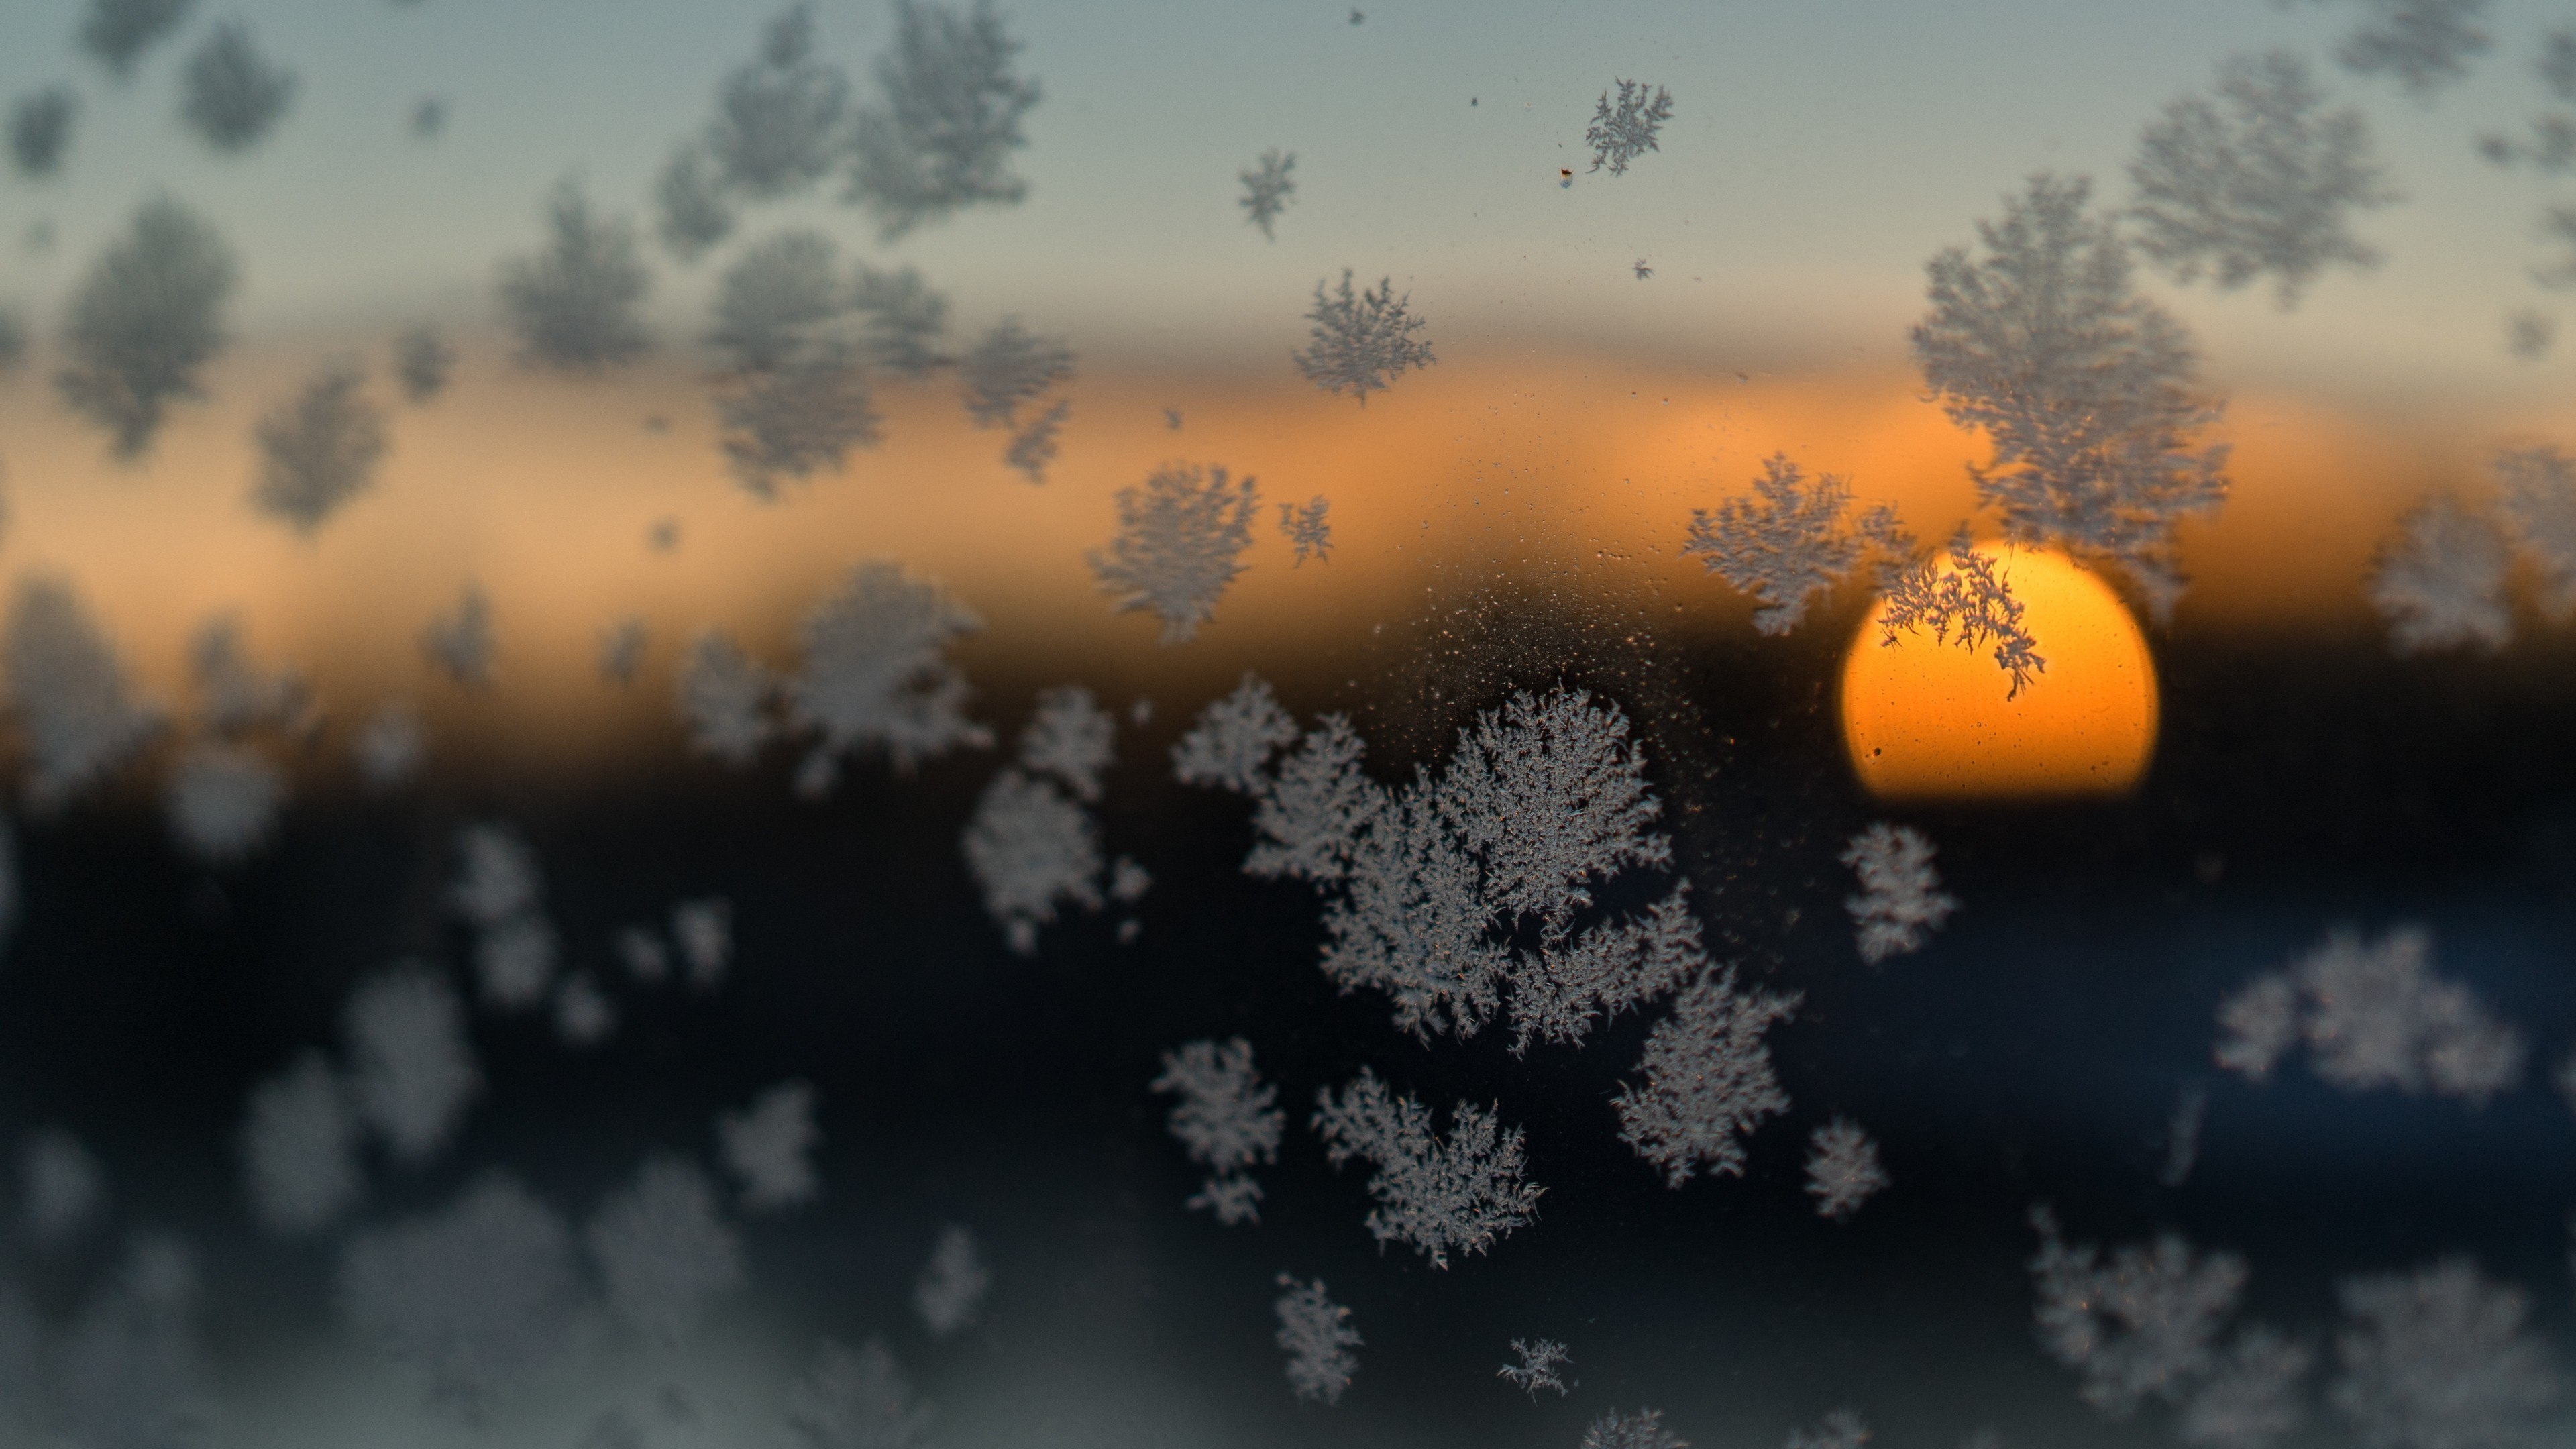 snow flakes sun blurred frost winter 4k 1540140135 - Snow Flakes Sun Blurred Frost Winter 4k - tree wallpapers, snowflakes wallpapers, snow wallpapers, nature wallpapers, hd-wallpapers, 5k wallpapers, 4k-wallpapers